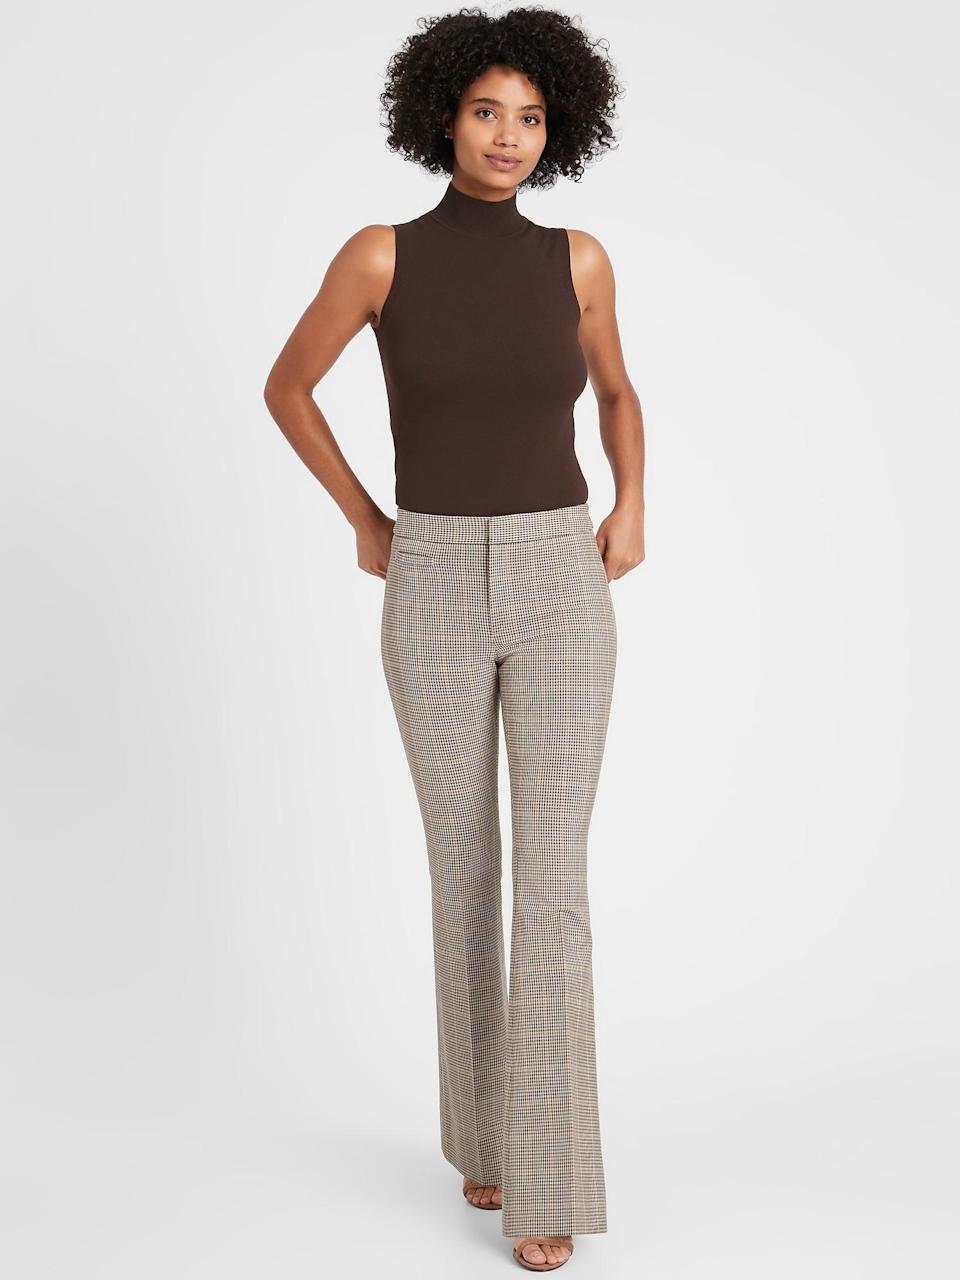 <p>Or try the <span>Banana Republic High-Rise Flare Sloan Pant</span> ($71, originally $99) in this plaid style with a turtleneck and leather blazer for a 70s cool <b>The Mod Squad</b> look!</p>